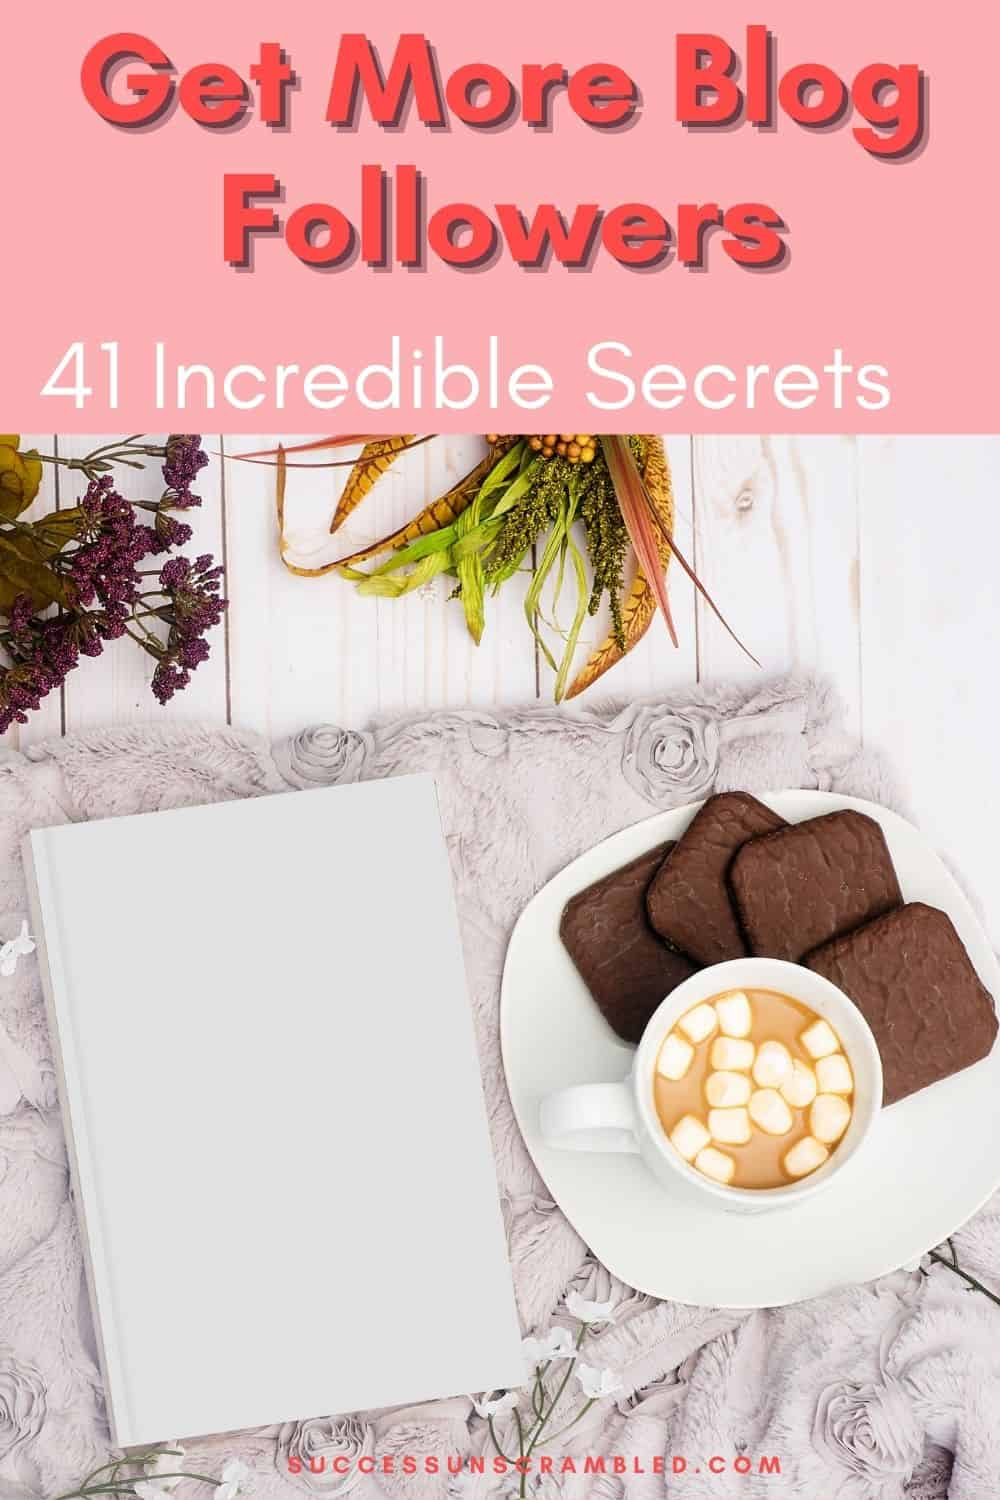 photo of a notebook next to a plate with chocolate biscuits and hot chocolate